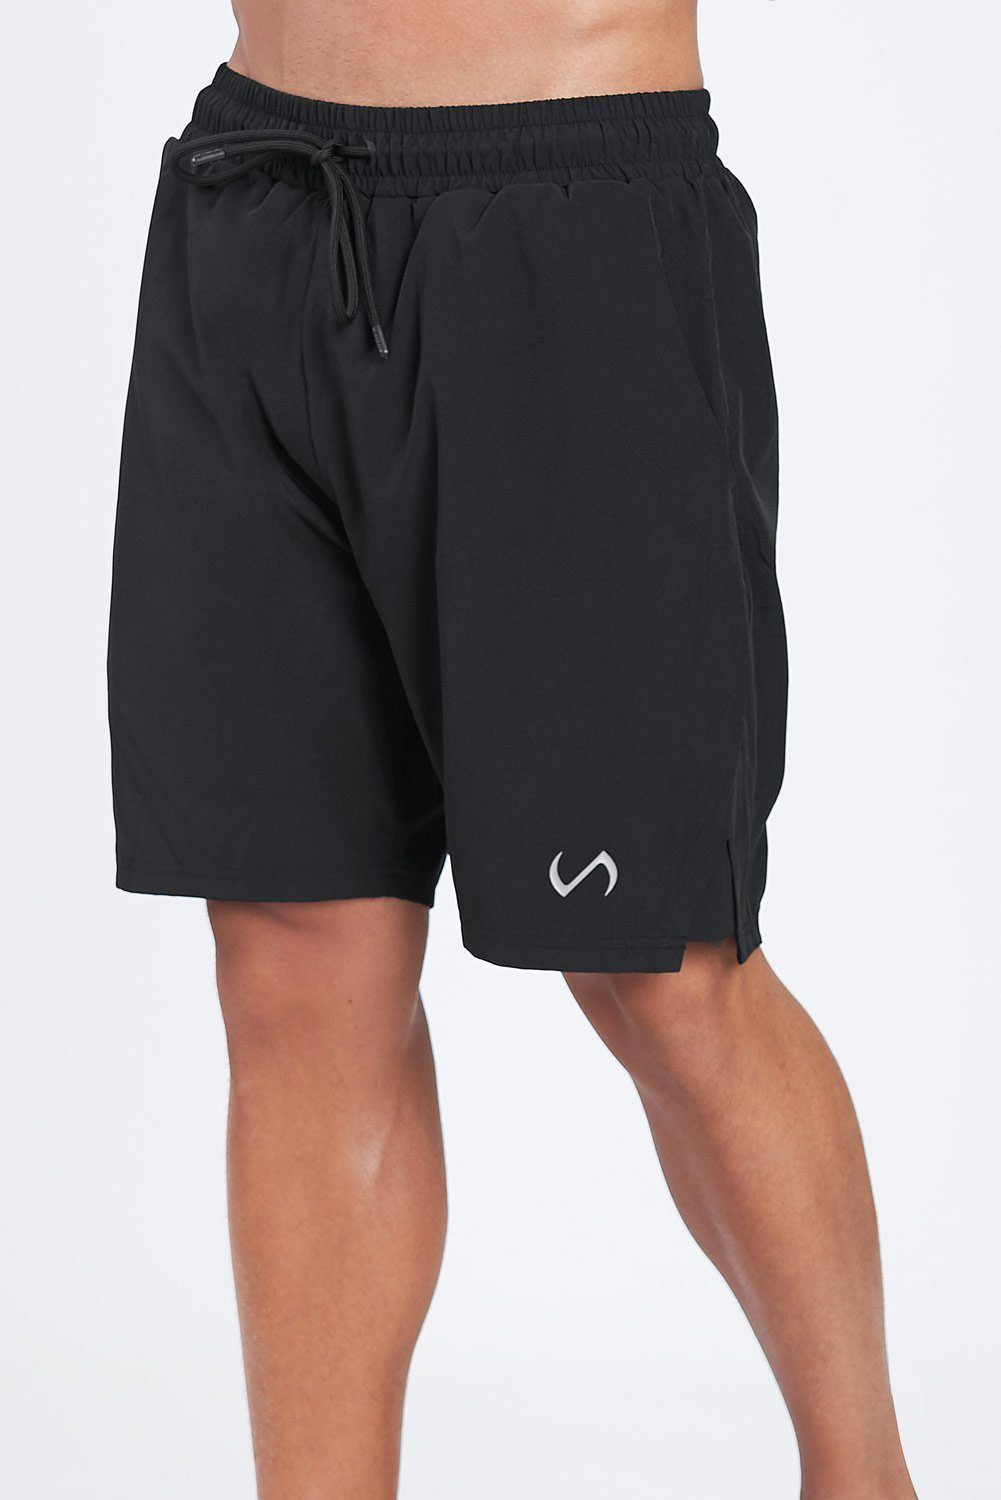 TLF Kratos Shorts - Shorts - TLF Apparel | Take Life Further